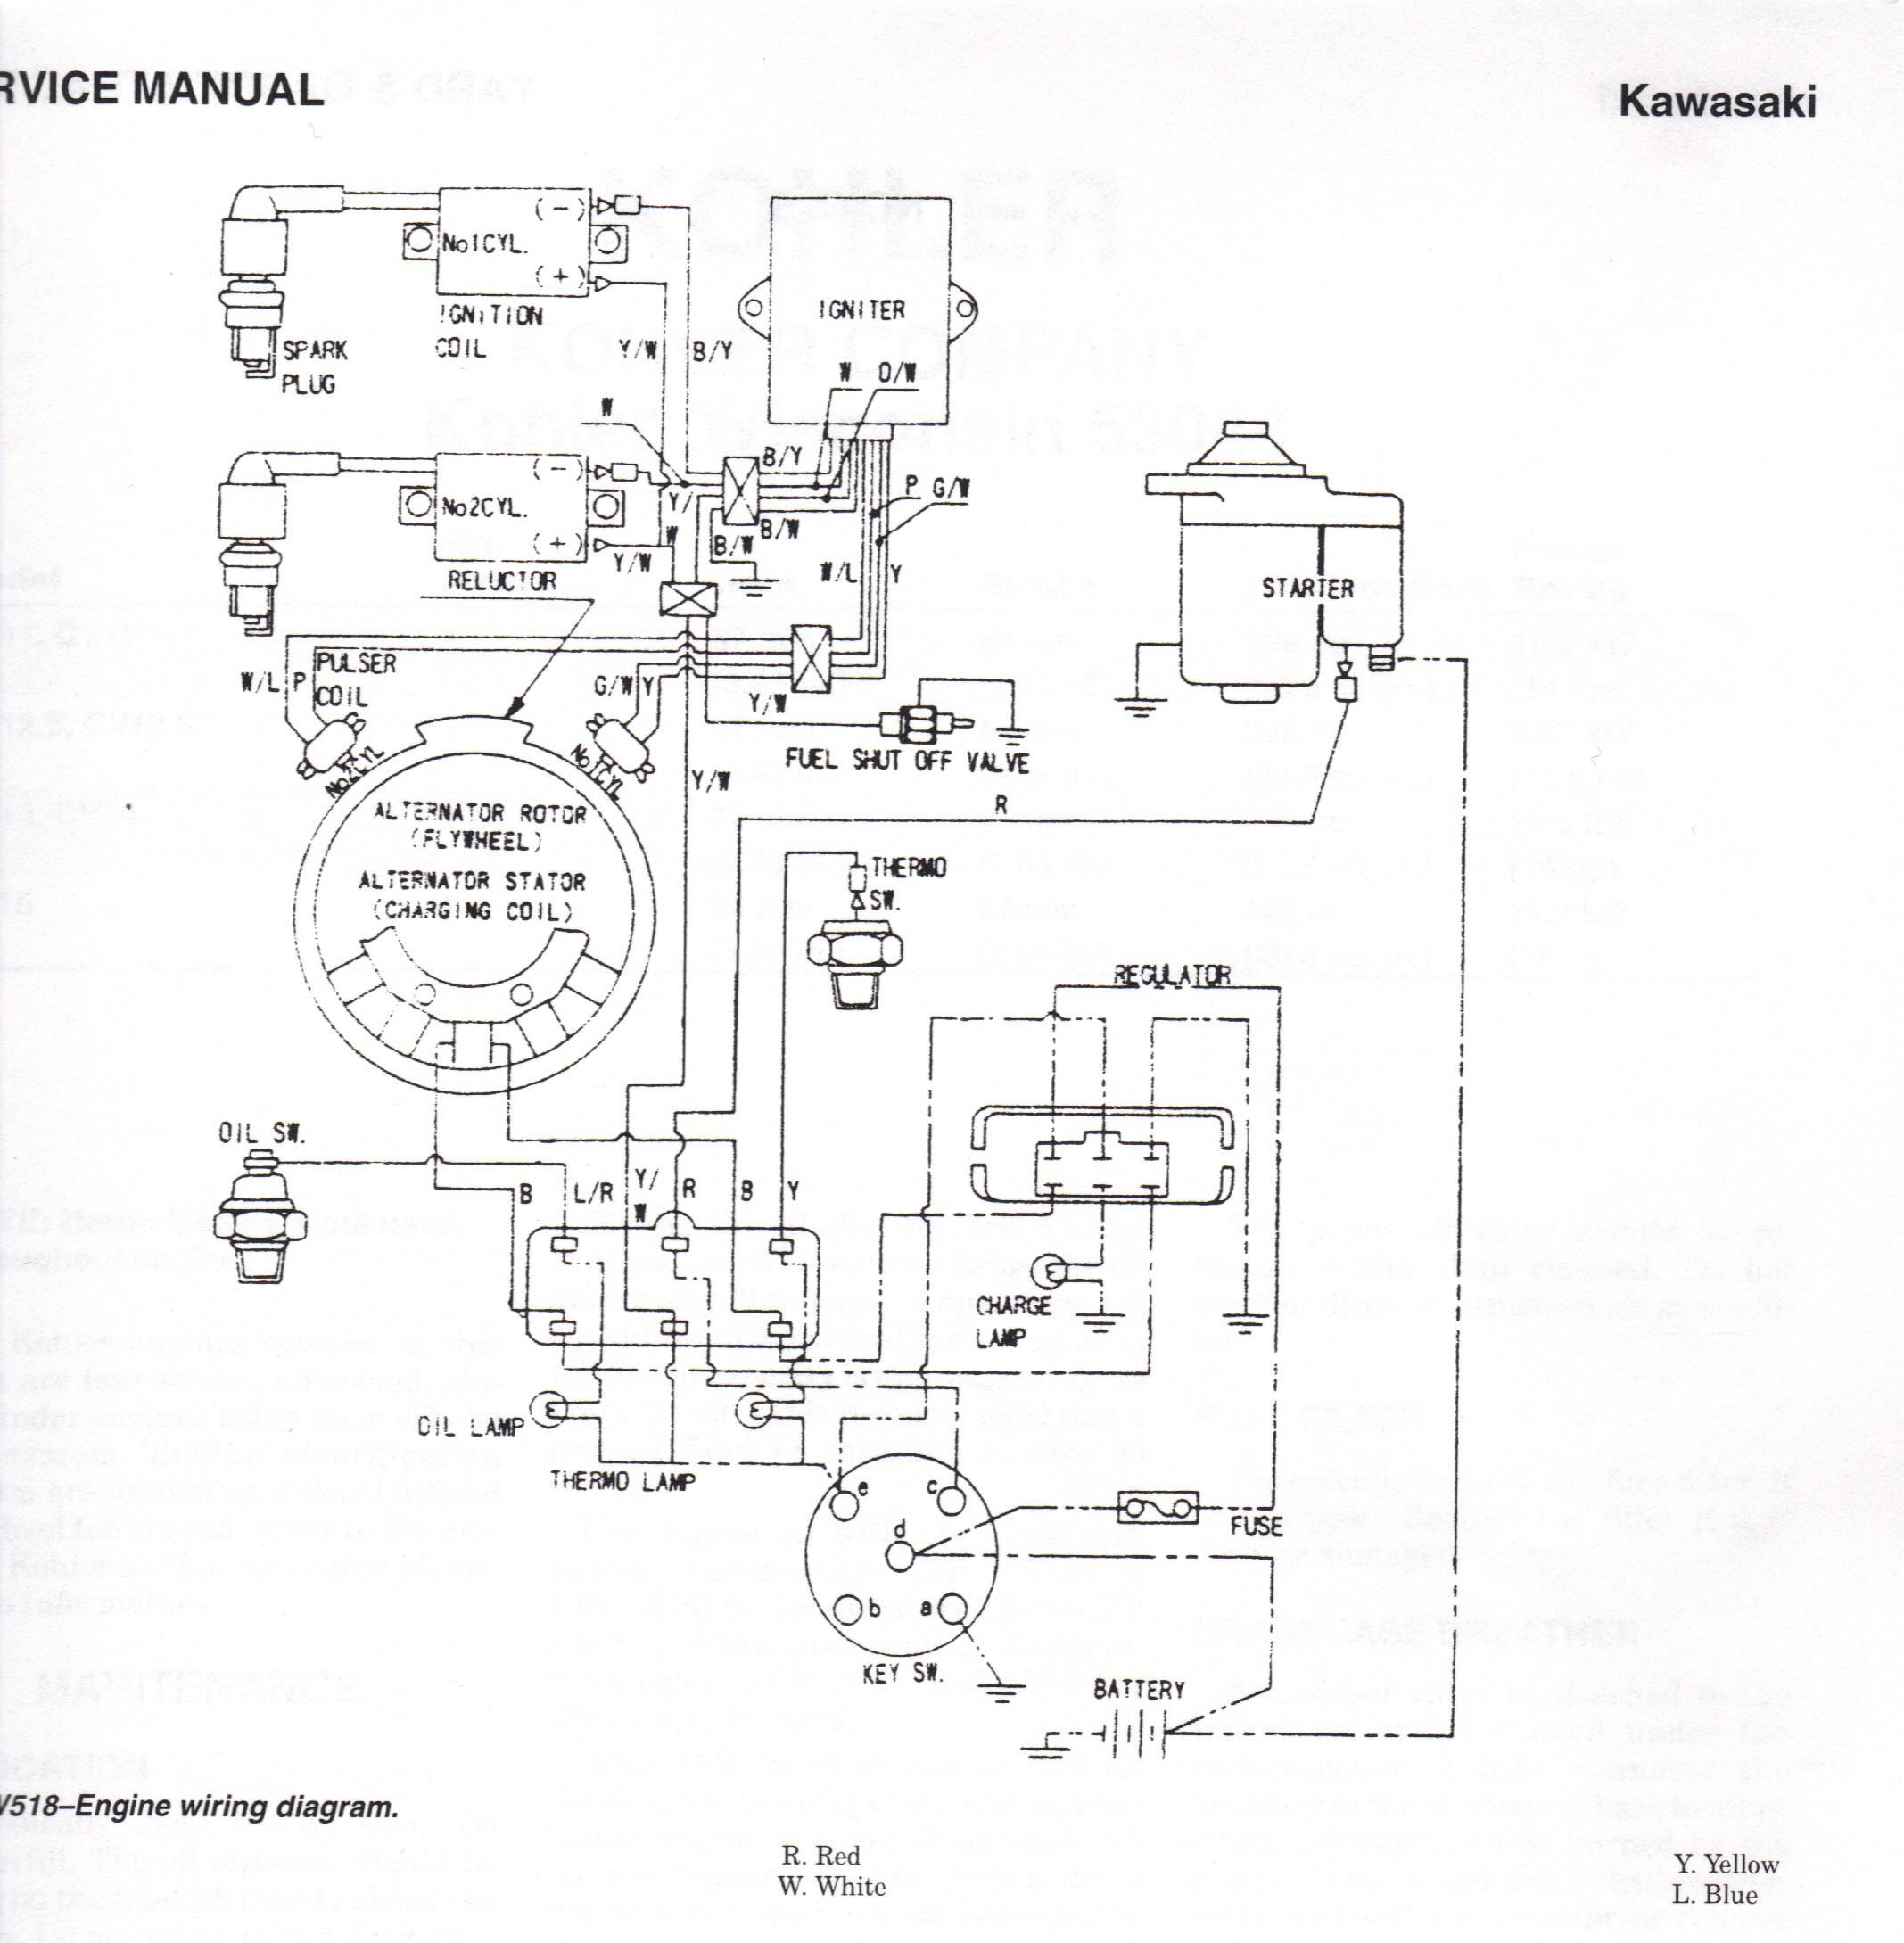 93kb Chevrolet C1500 4x2 Need A Cab Wiring Diagram For 1990 Cheavy